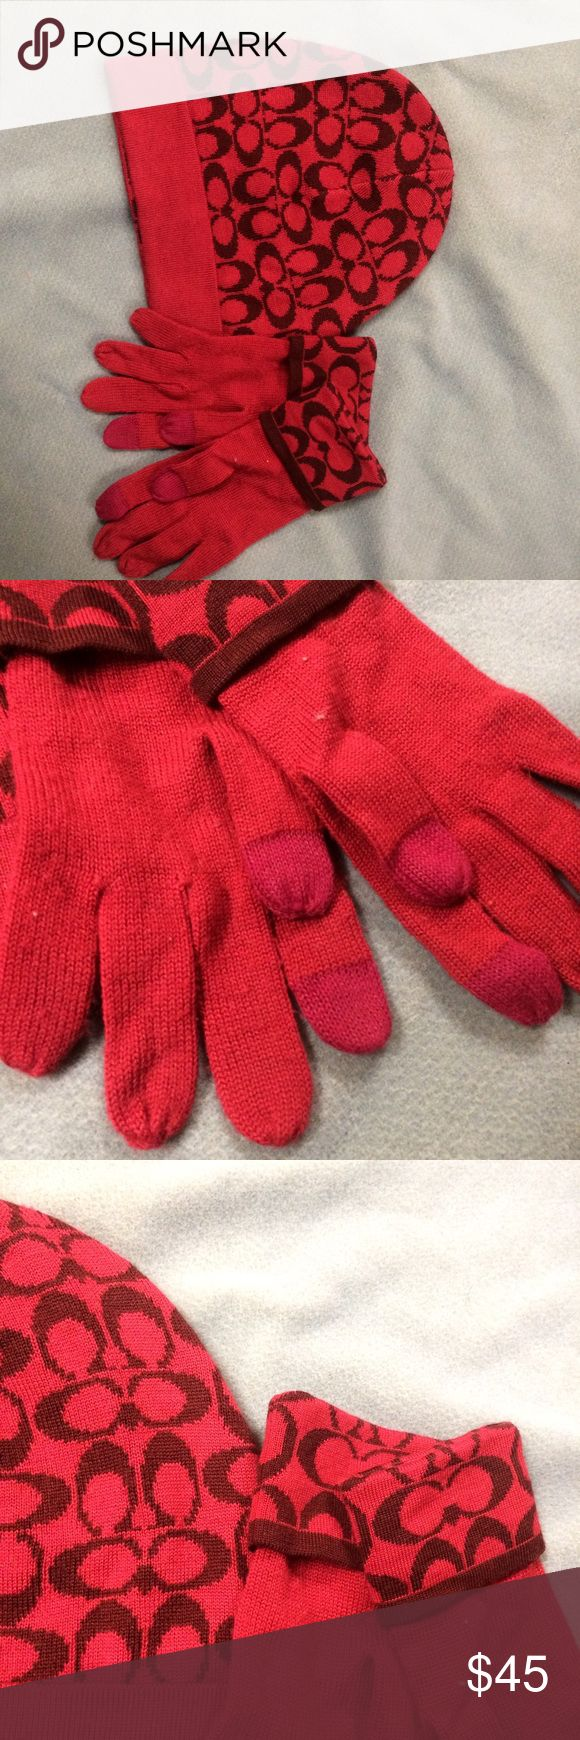 Coach hat and tech gloves Super stylish hat and gloves with touch screen capability. Color is a little off in the picture, more of a burgundy/red plum. Worn maybe 2-3 times.  Bundle and save! Feel free to make me an offer :) Coach Accessories Gloves & Mittens